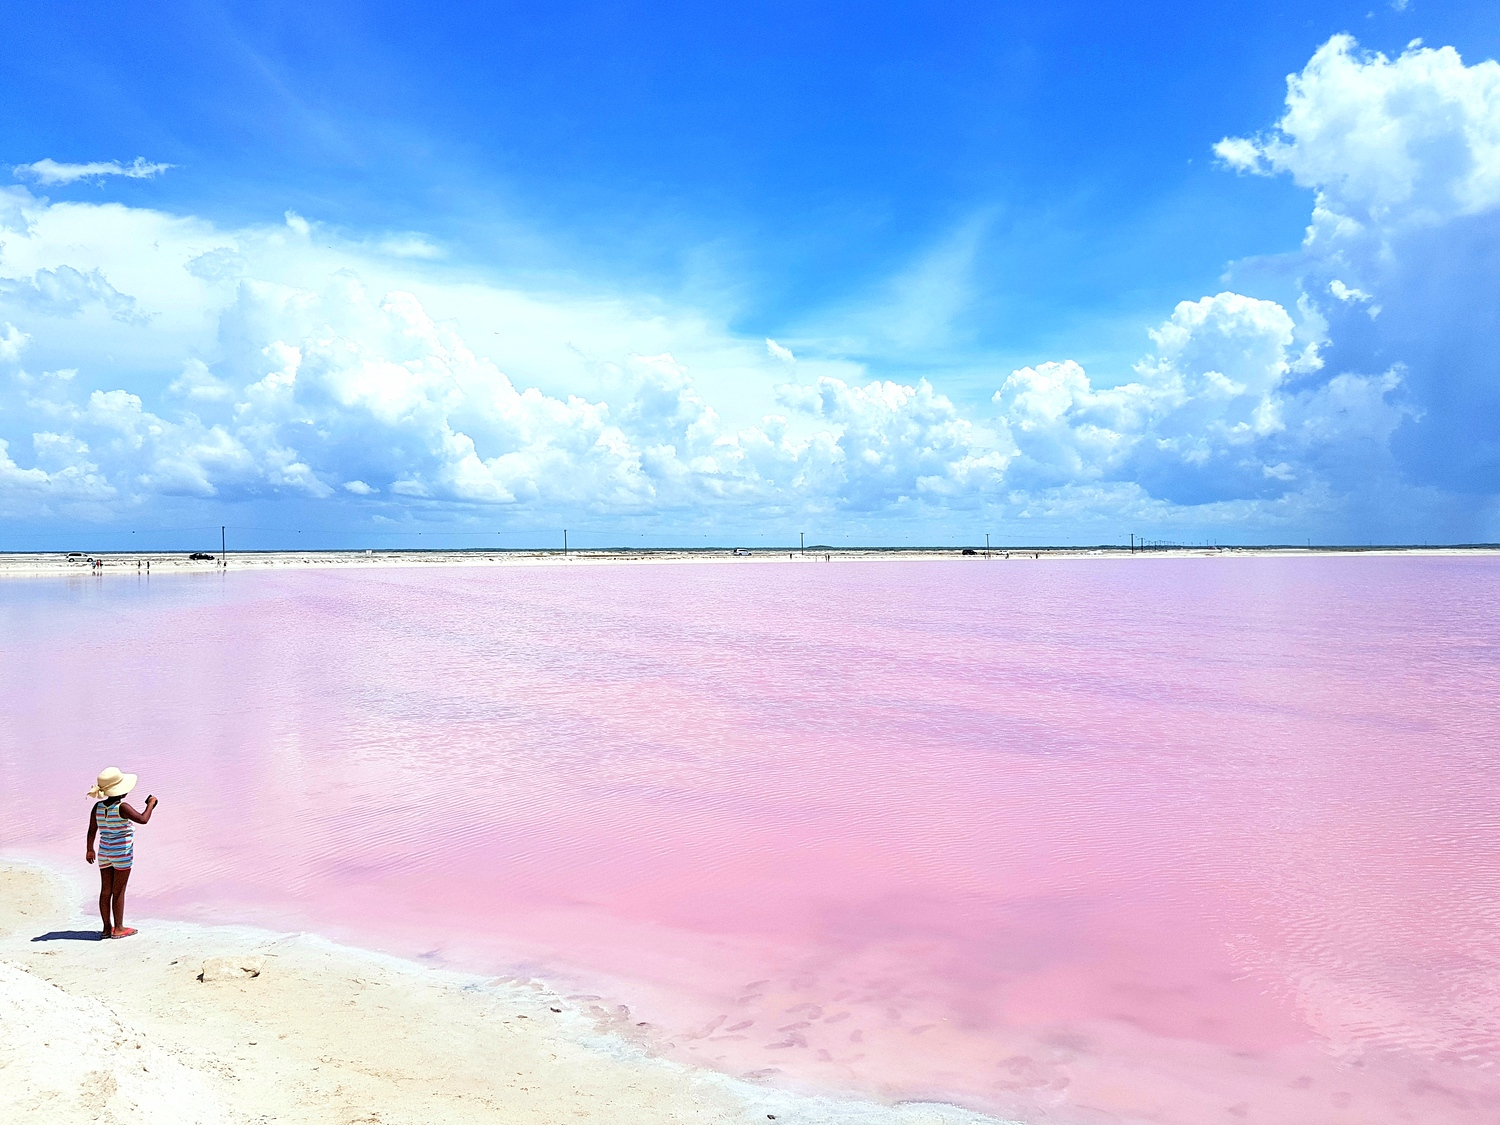 Las Coloradas Playa del Carmen Mexico, a pink lake made from local shrimp that die in the salinated water and excrete a bacteria turning the water pink.